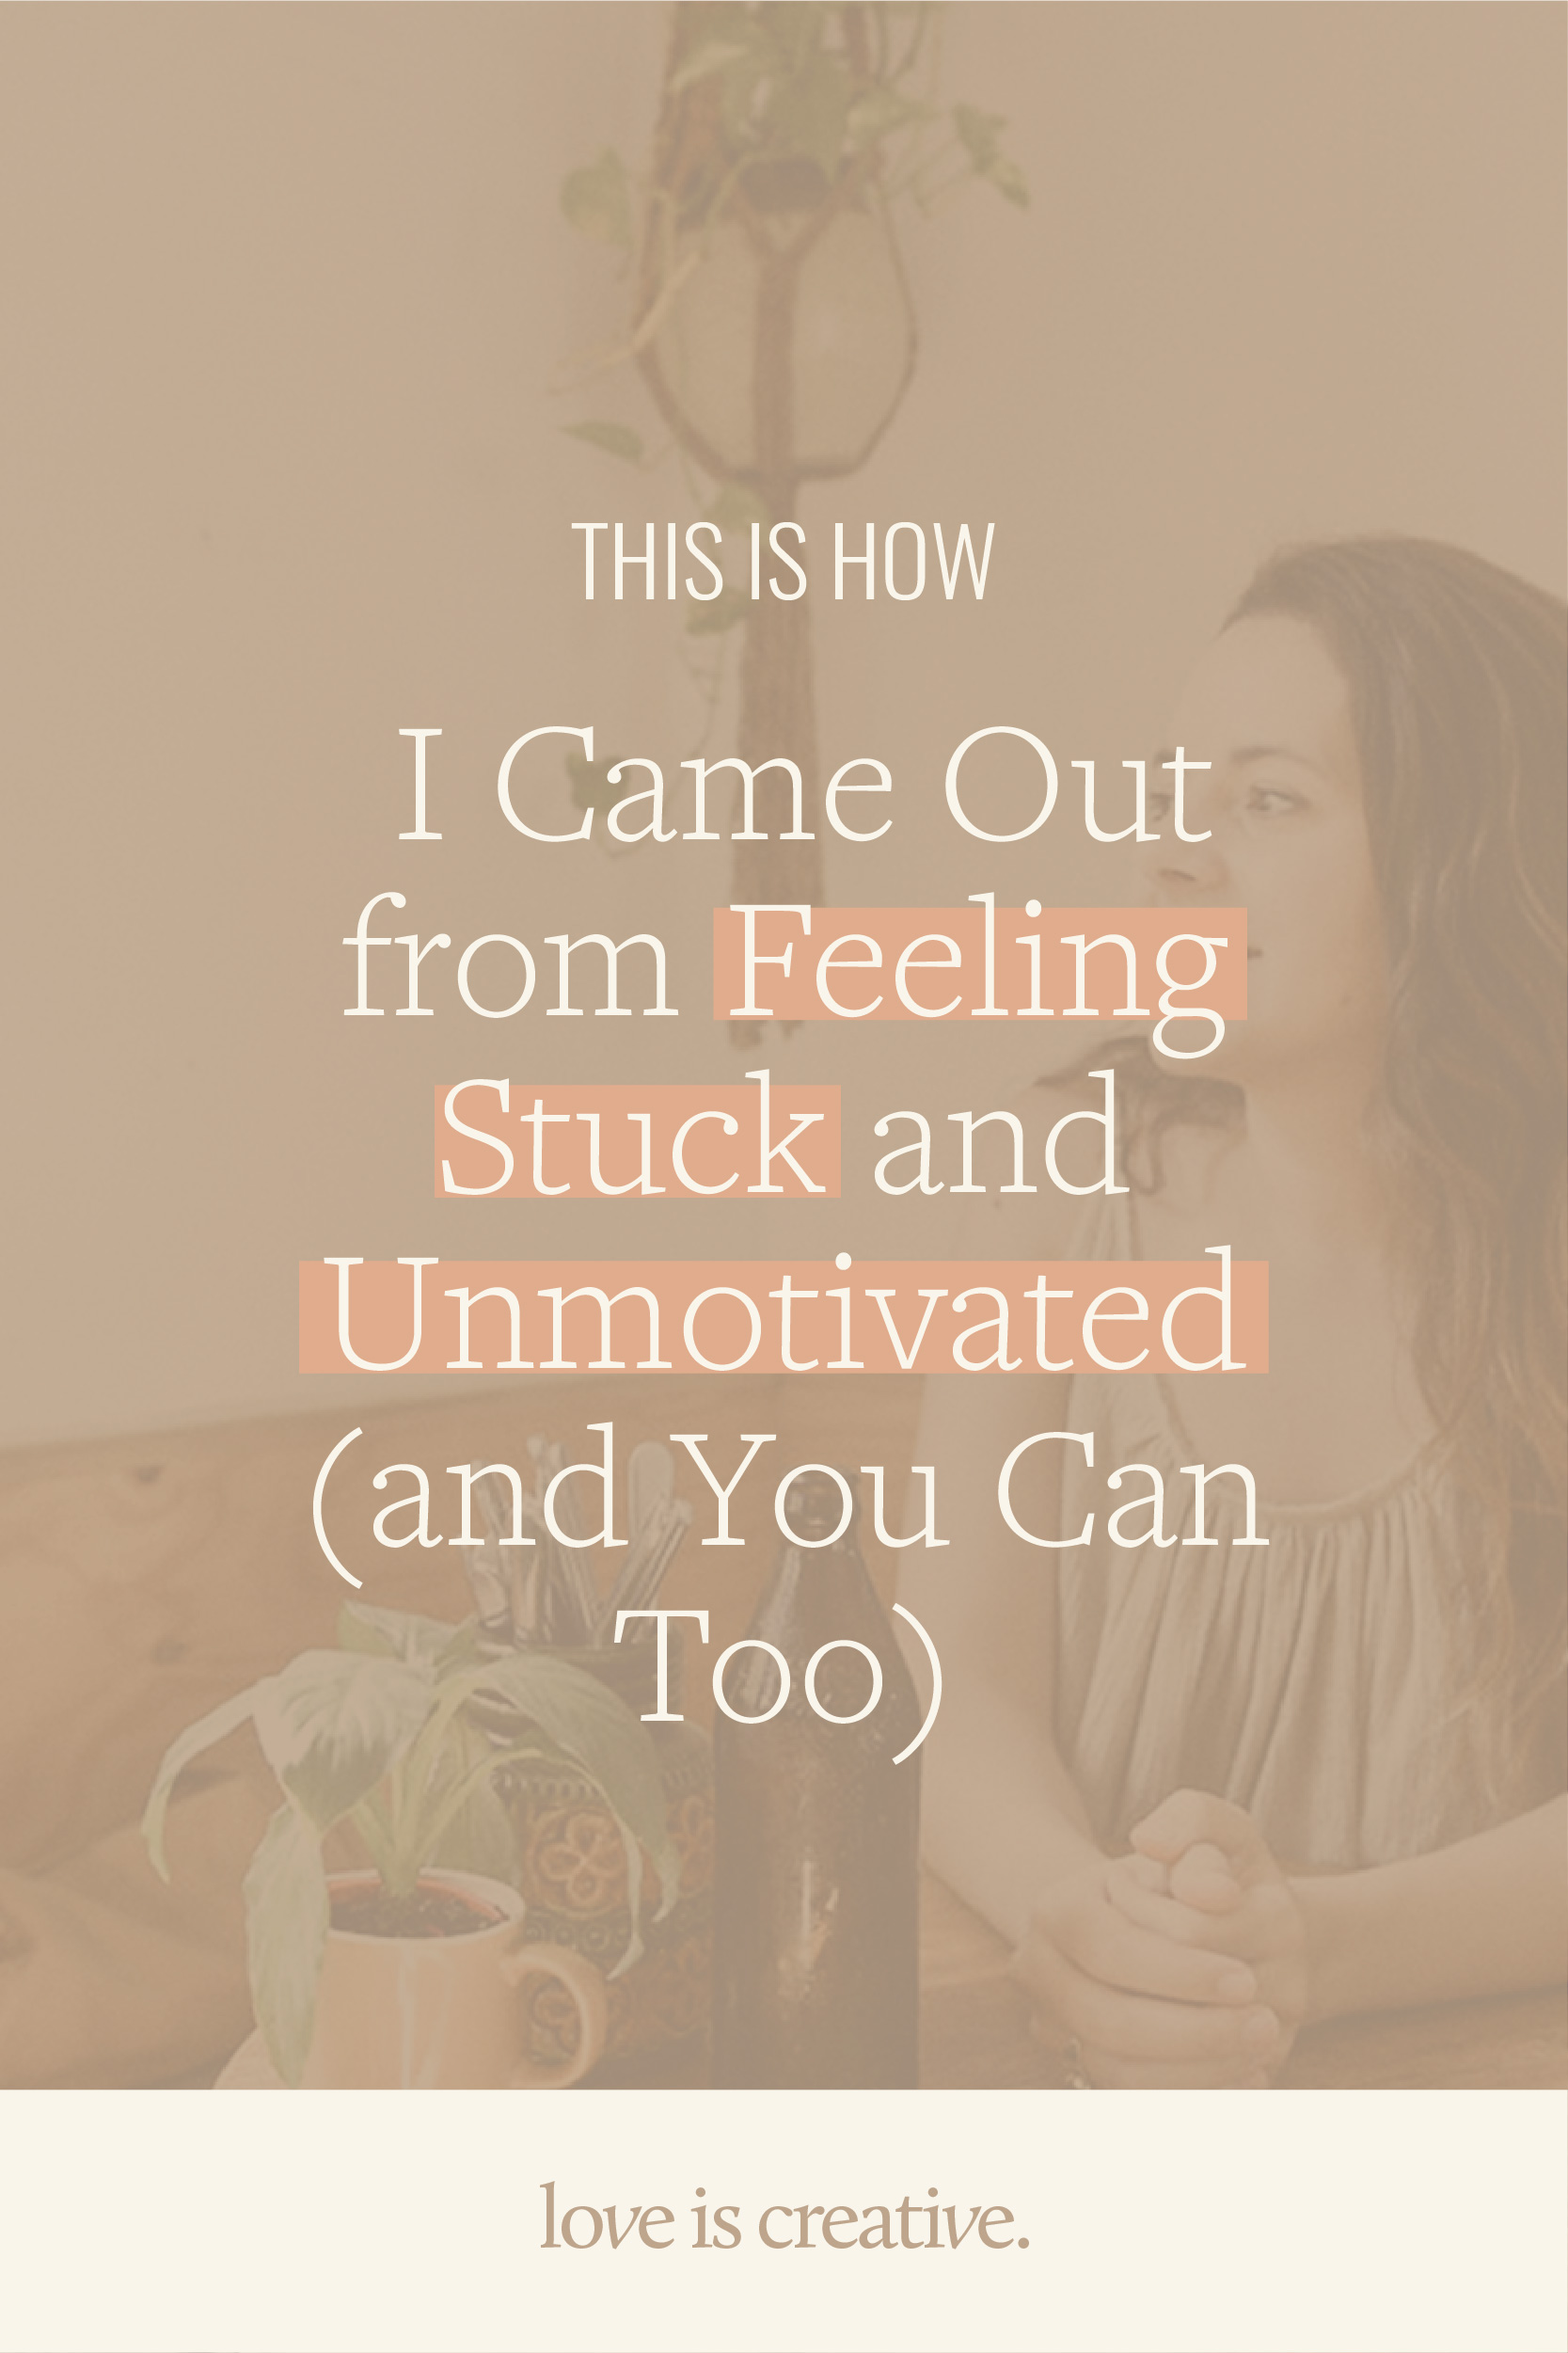 blog-graphic-how-i-came-out-feeling-stuck-unmotivated.jpg